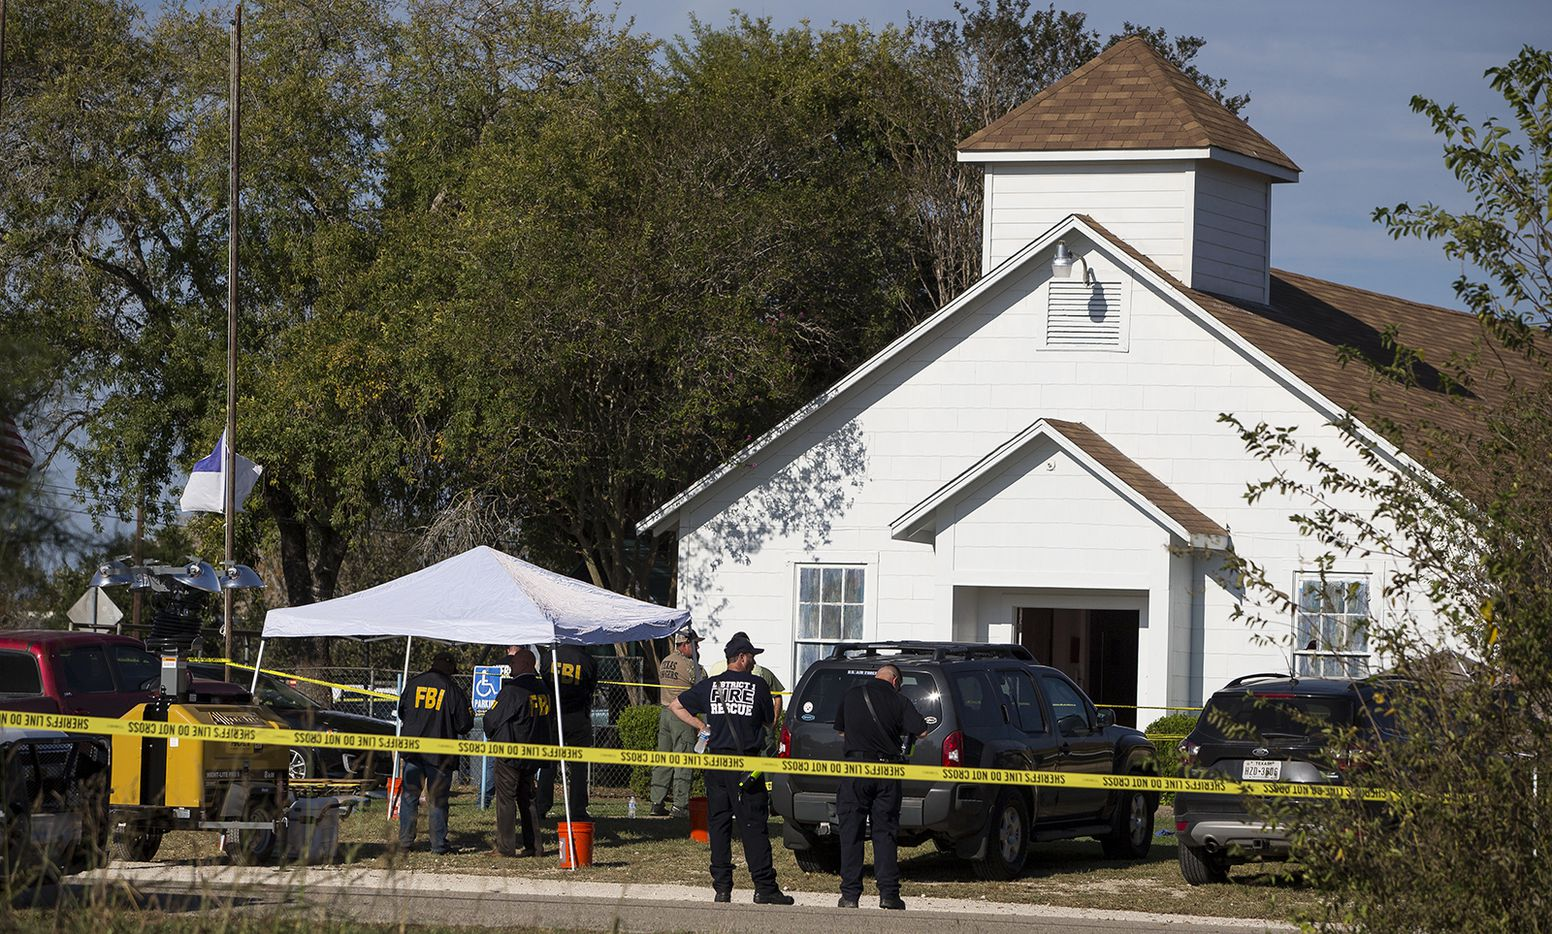 Law enforcement officials works at the scene of a fatal shooting at the First Baptist Church in Sutherland Springs, Texas, on Sunday, Nov. 5, 2017.